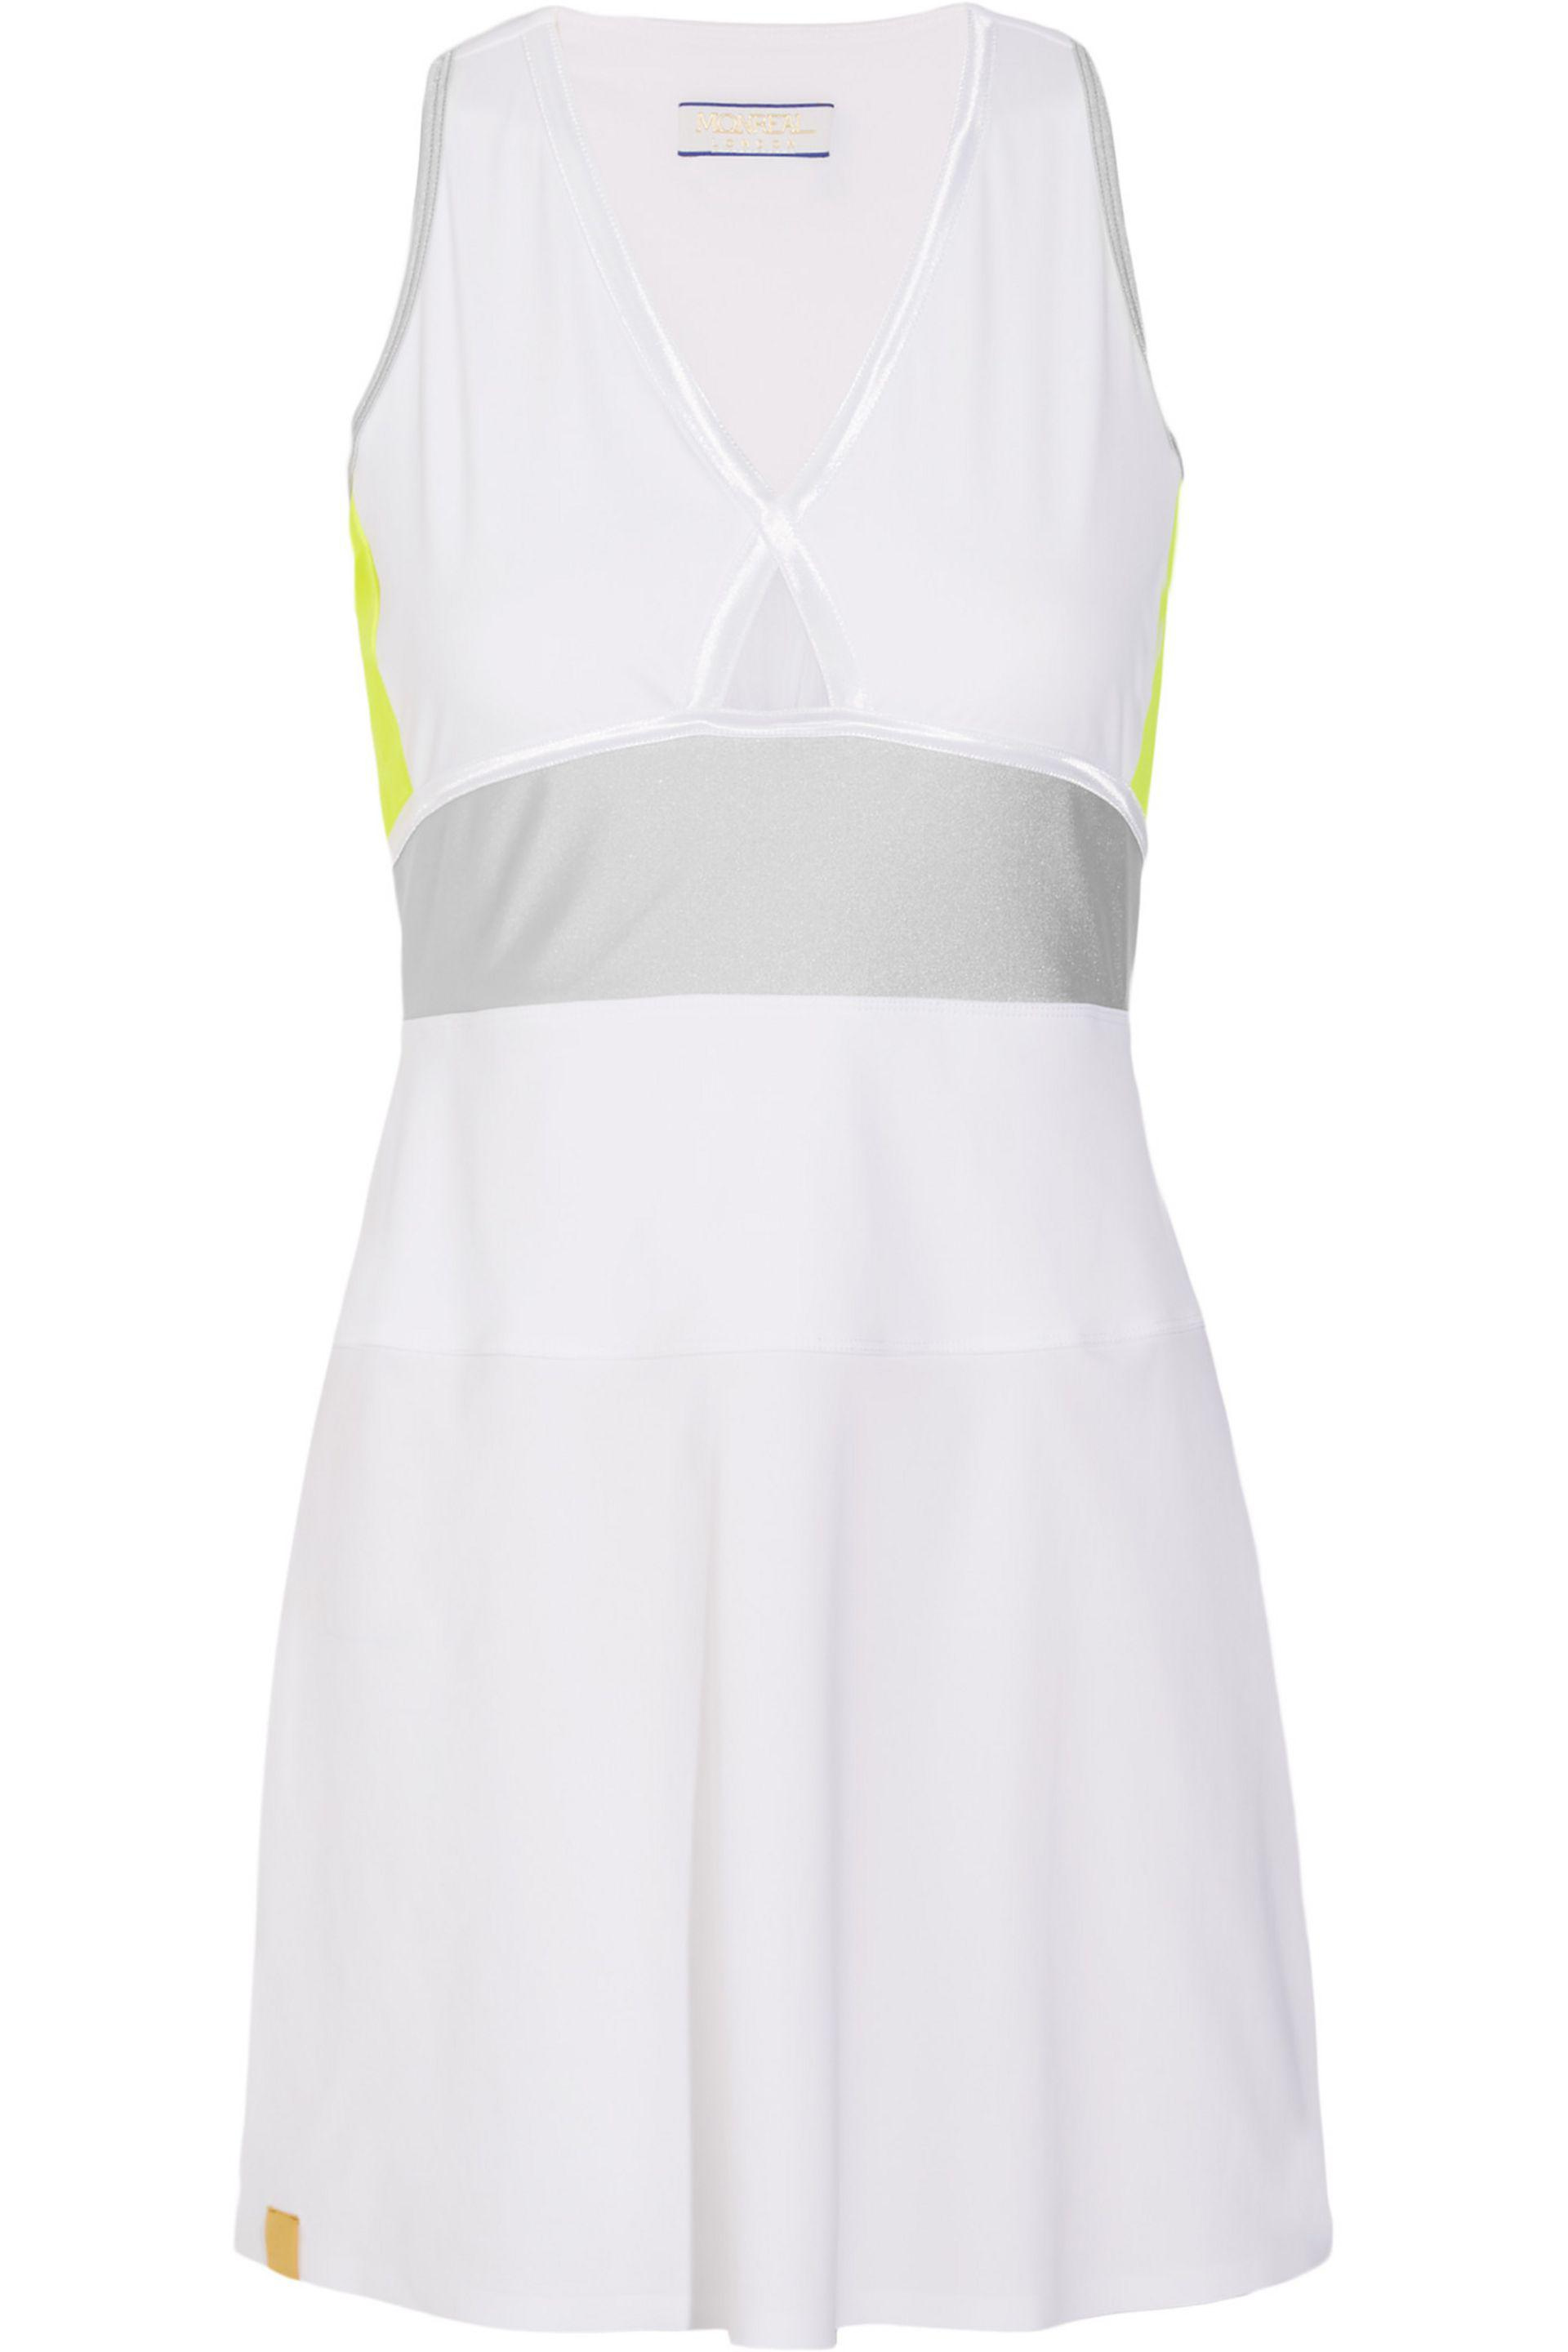 a1d07acc5b8a Monreal London Action Stretch-jersey Tennis Dress in White - Lyst